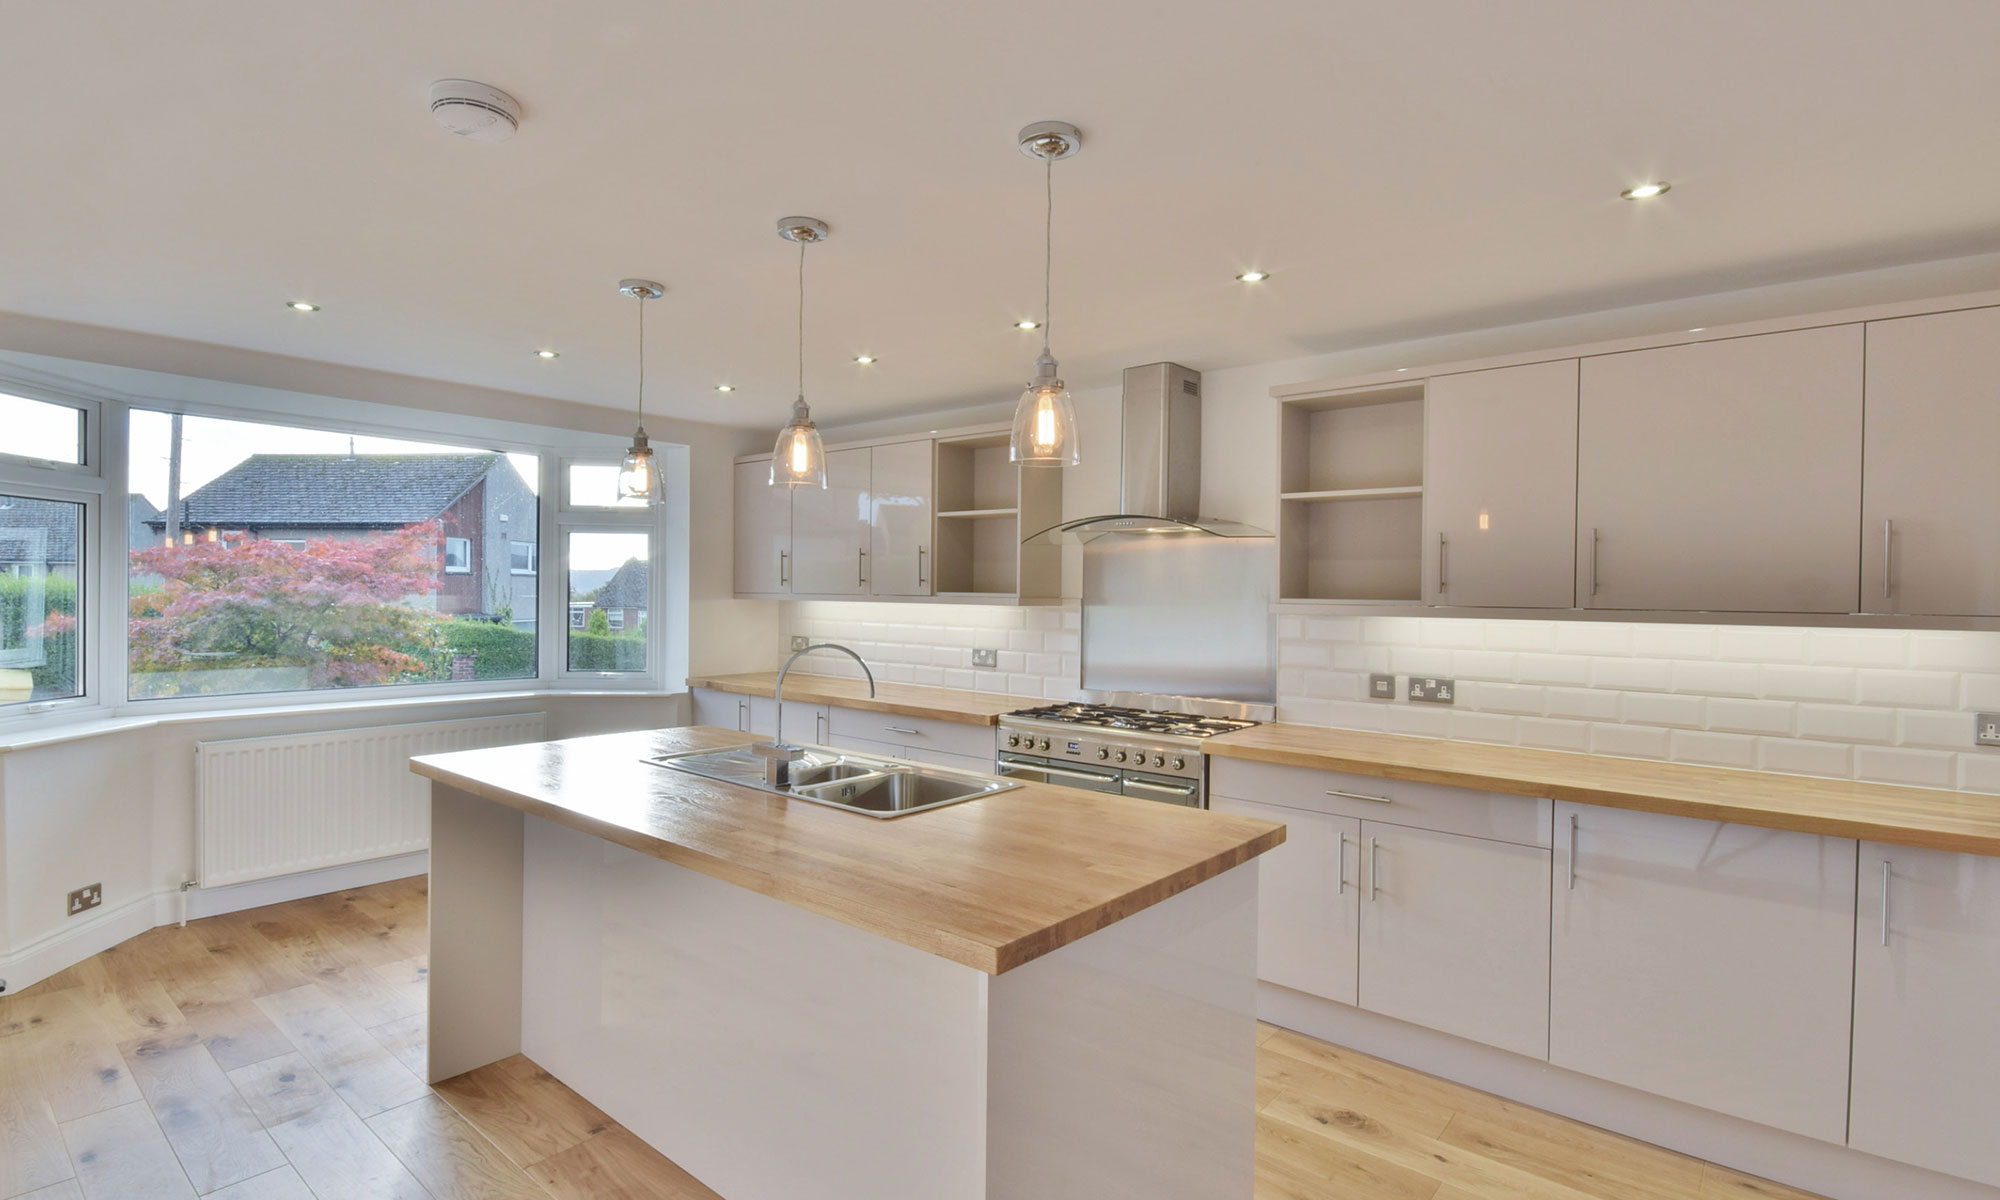 OAKWOOD BUNGALOW EXTENSION KITCHEN